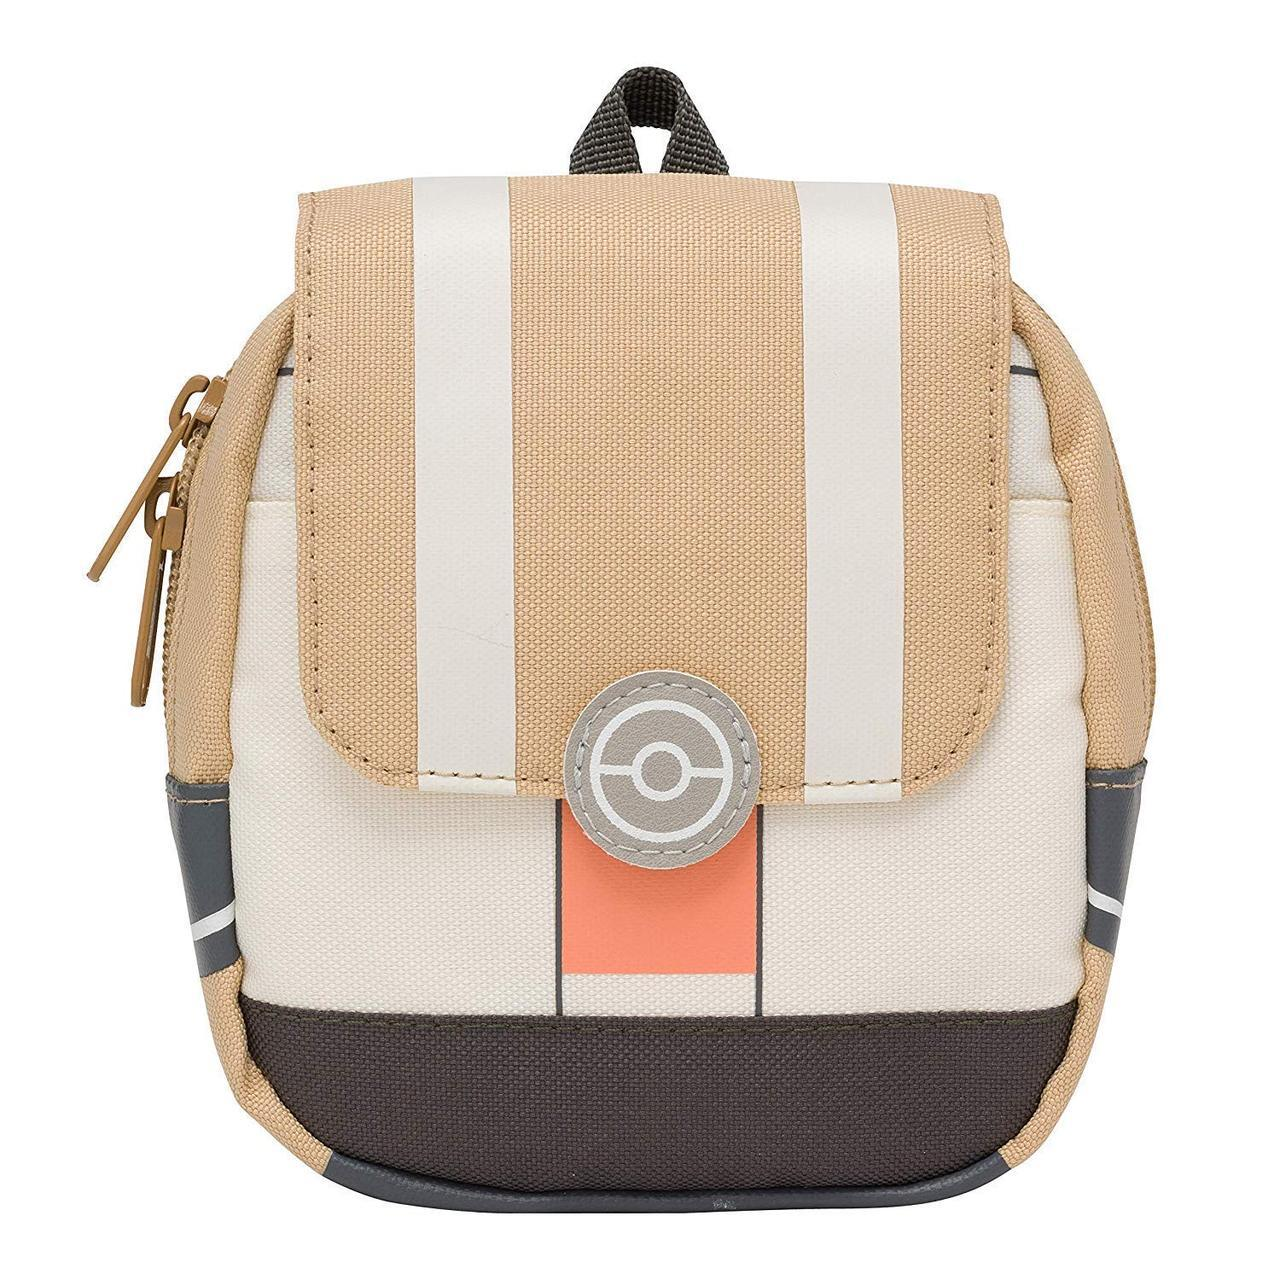 The Pokemon Center has released replica backpacks of the